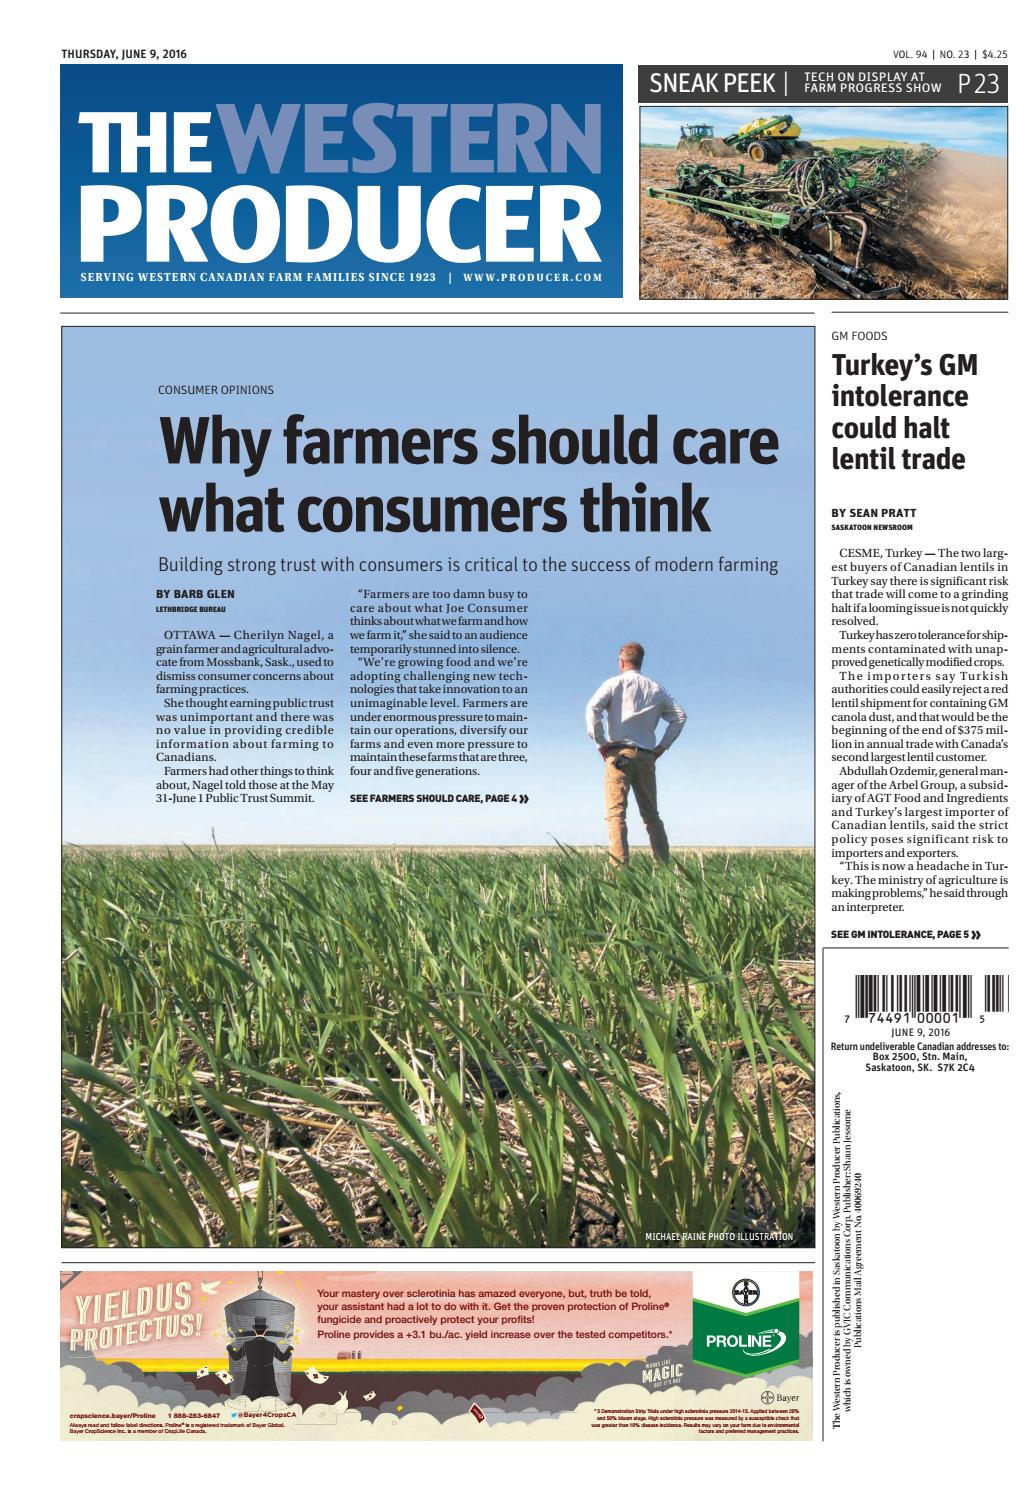 The western producer june 9, 2016 by The Western Producer